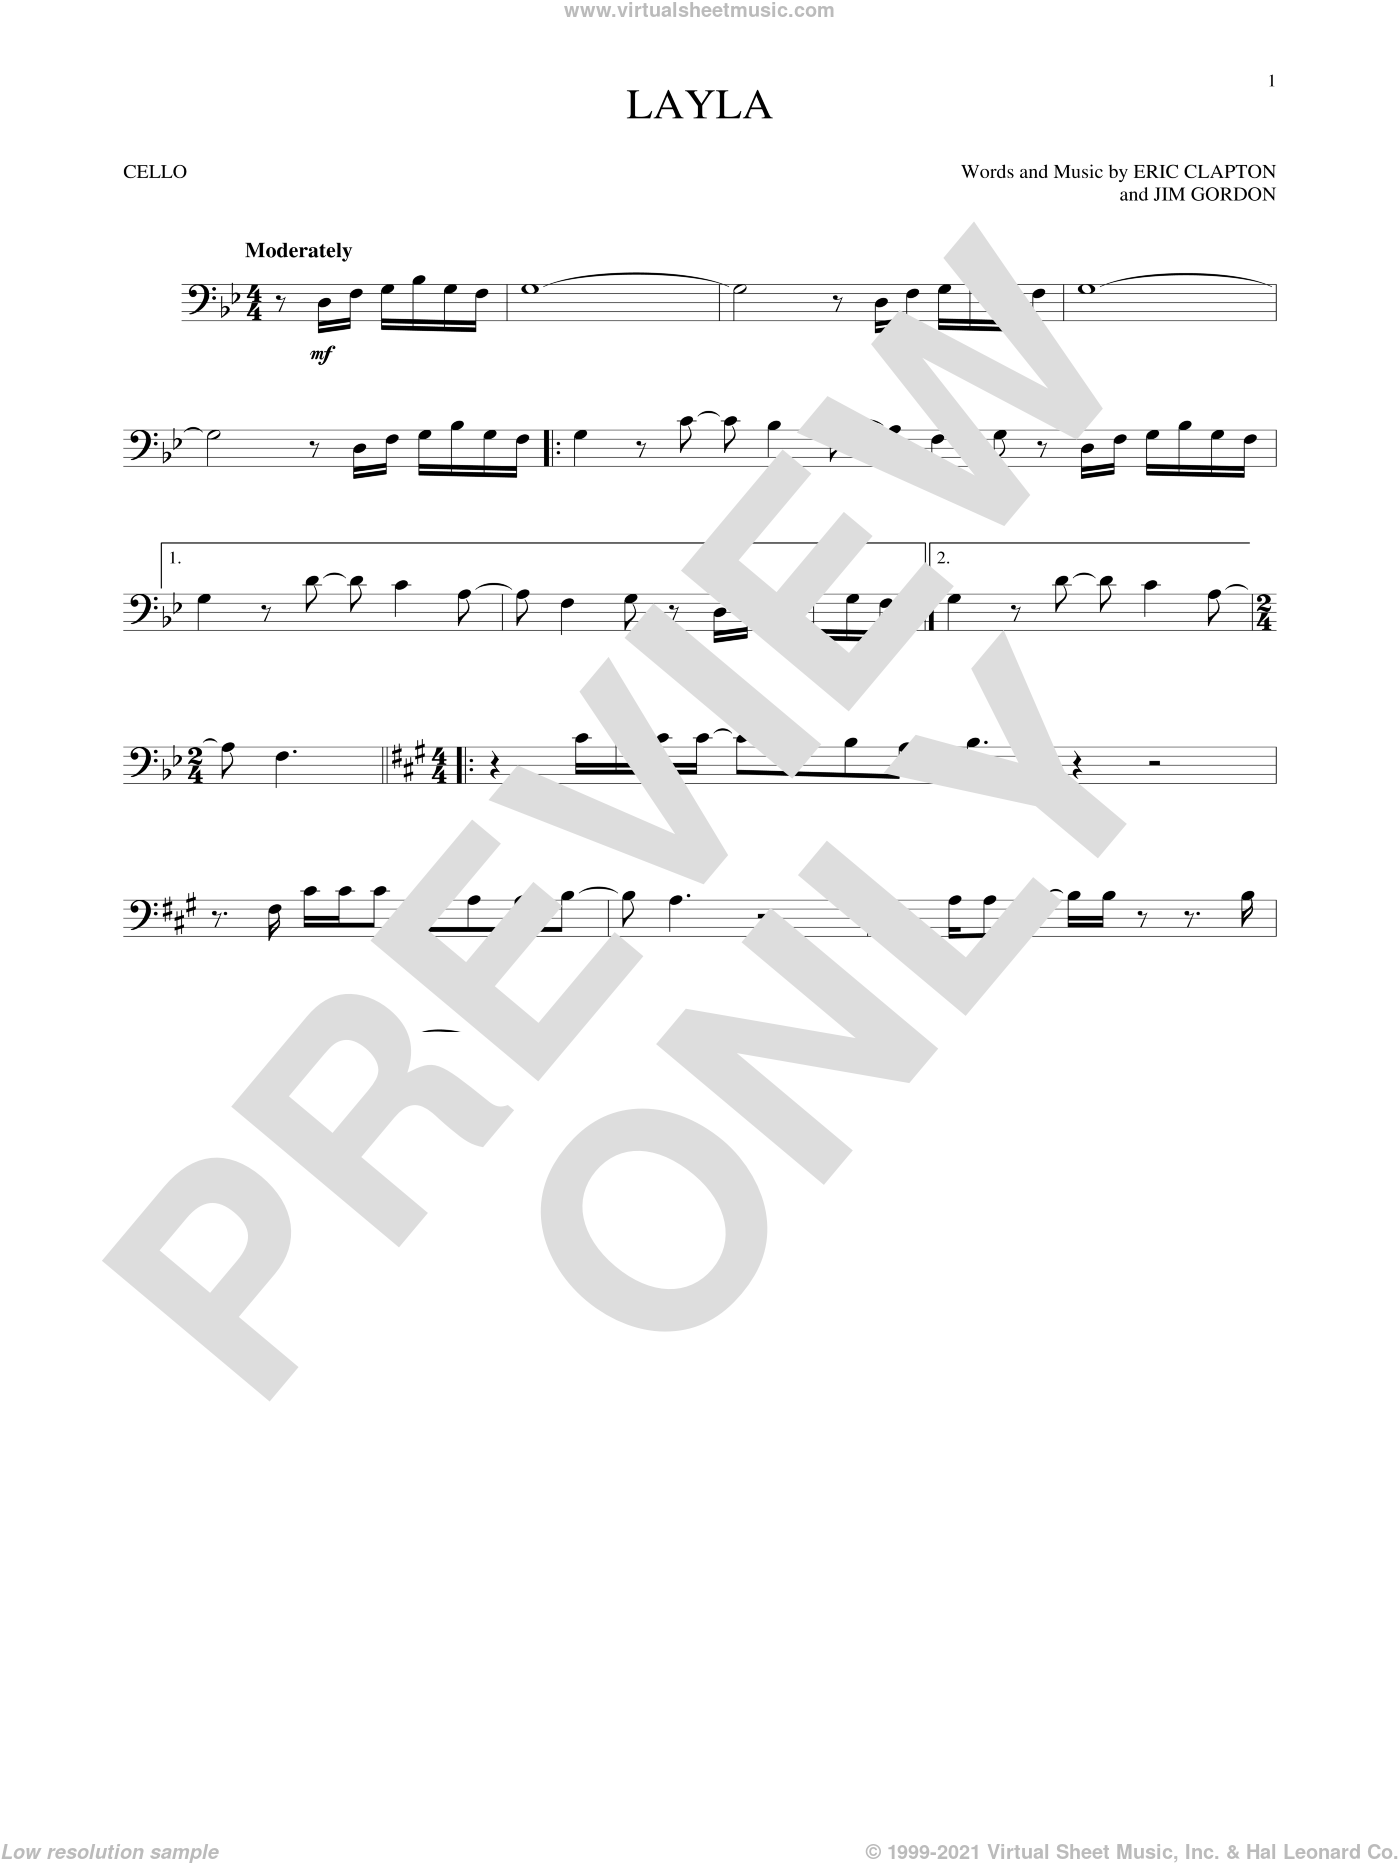 Layla sheet music for cello solo by Eric Clapton, Derek And The Dominos and Jim Gordon, intermediate skill level